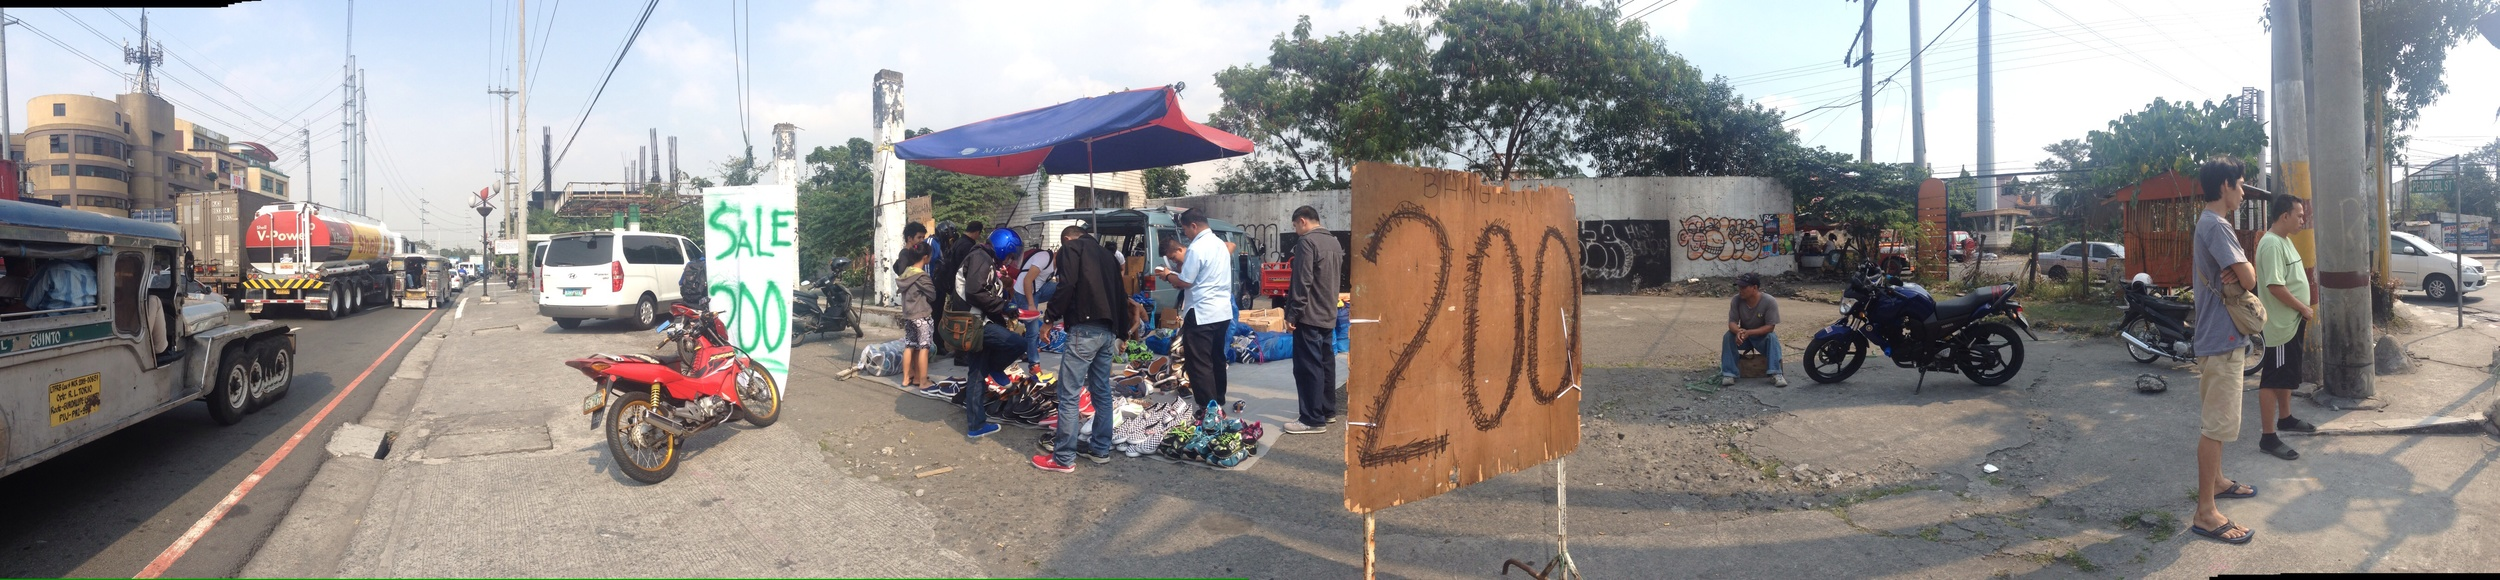 Here's one example of a pop-up stall along Quirino extensionlocated between two primary roads onan open empty lot.